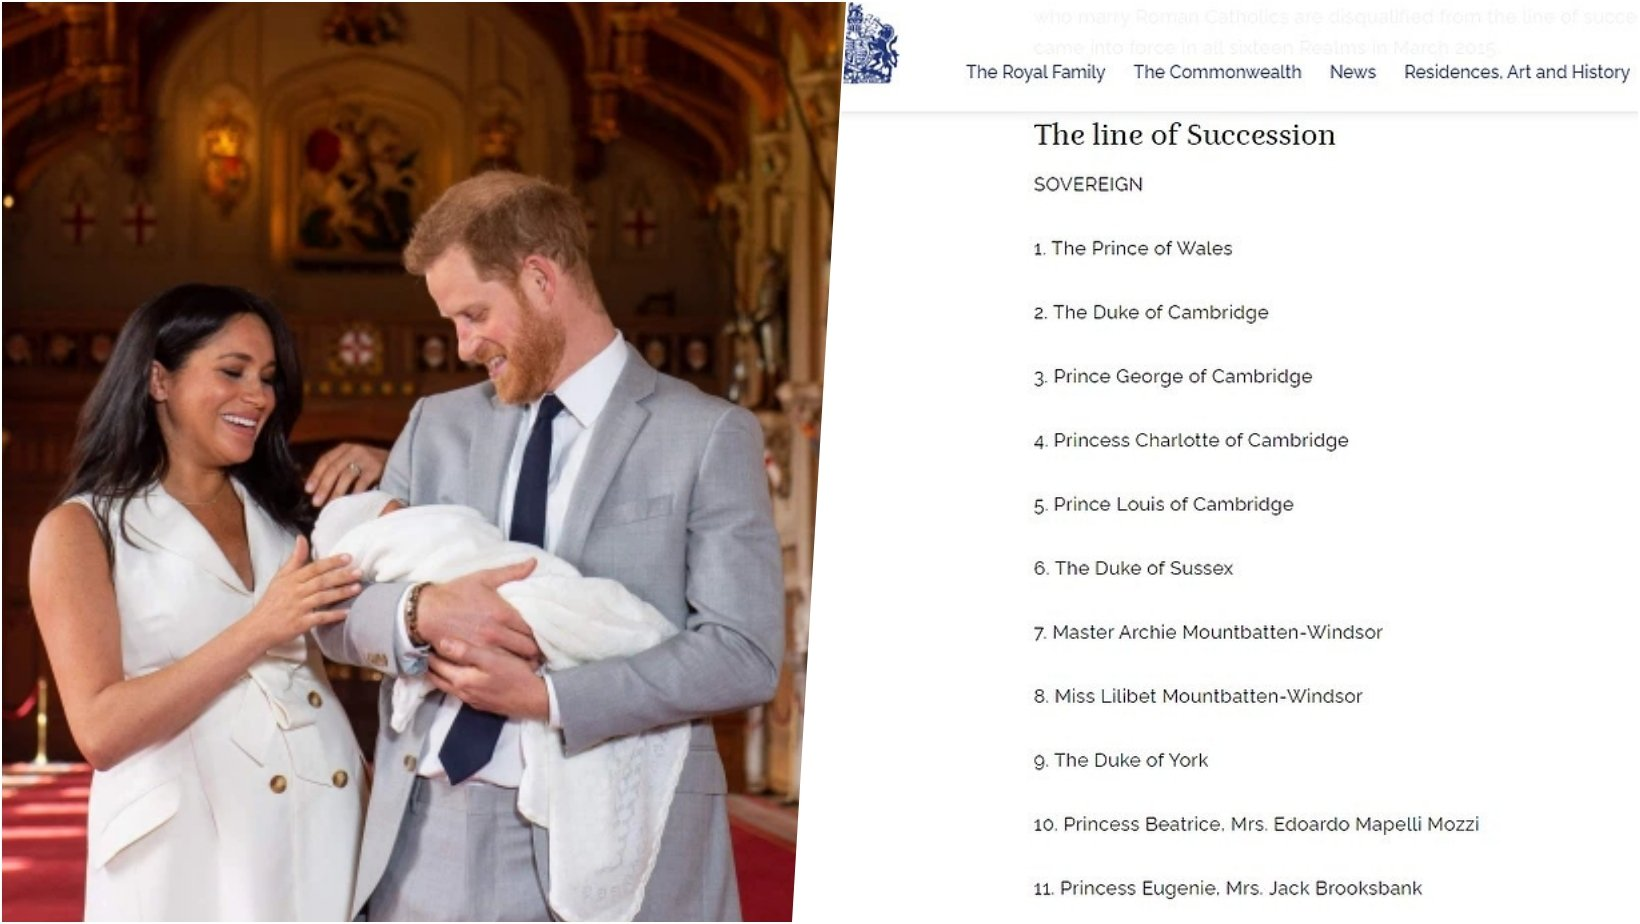 6 facebook cover 26.jpg?resize=412,232 - Lilibet Diana Is FINALLY Listed On The Royal Family's Line Of Succession, Seven Weeks After Her Birth